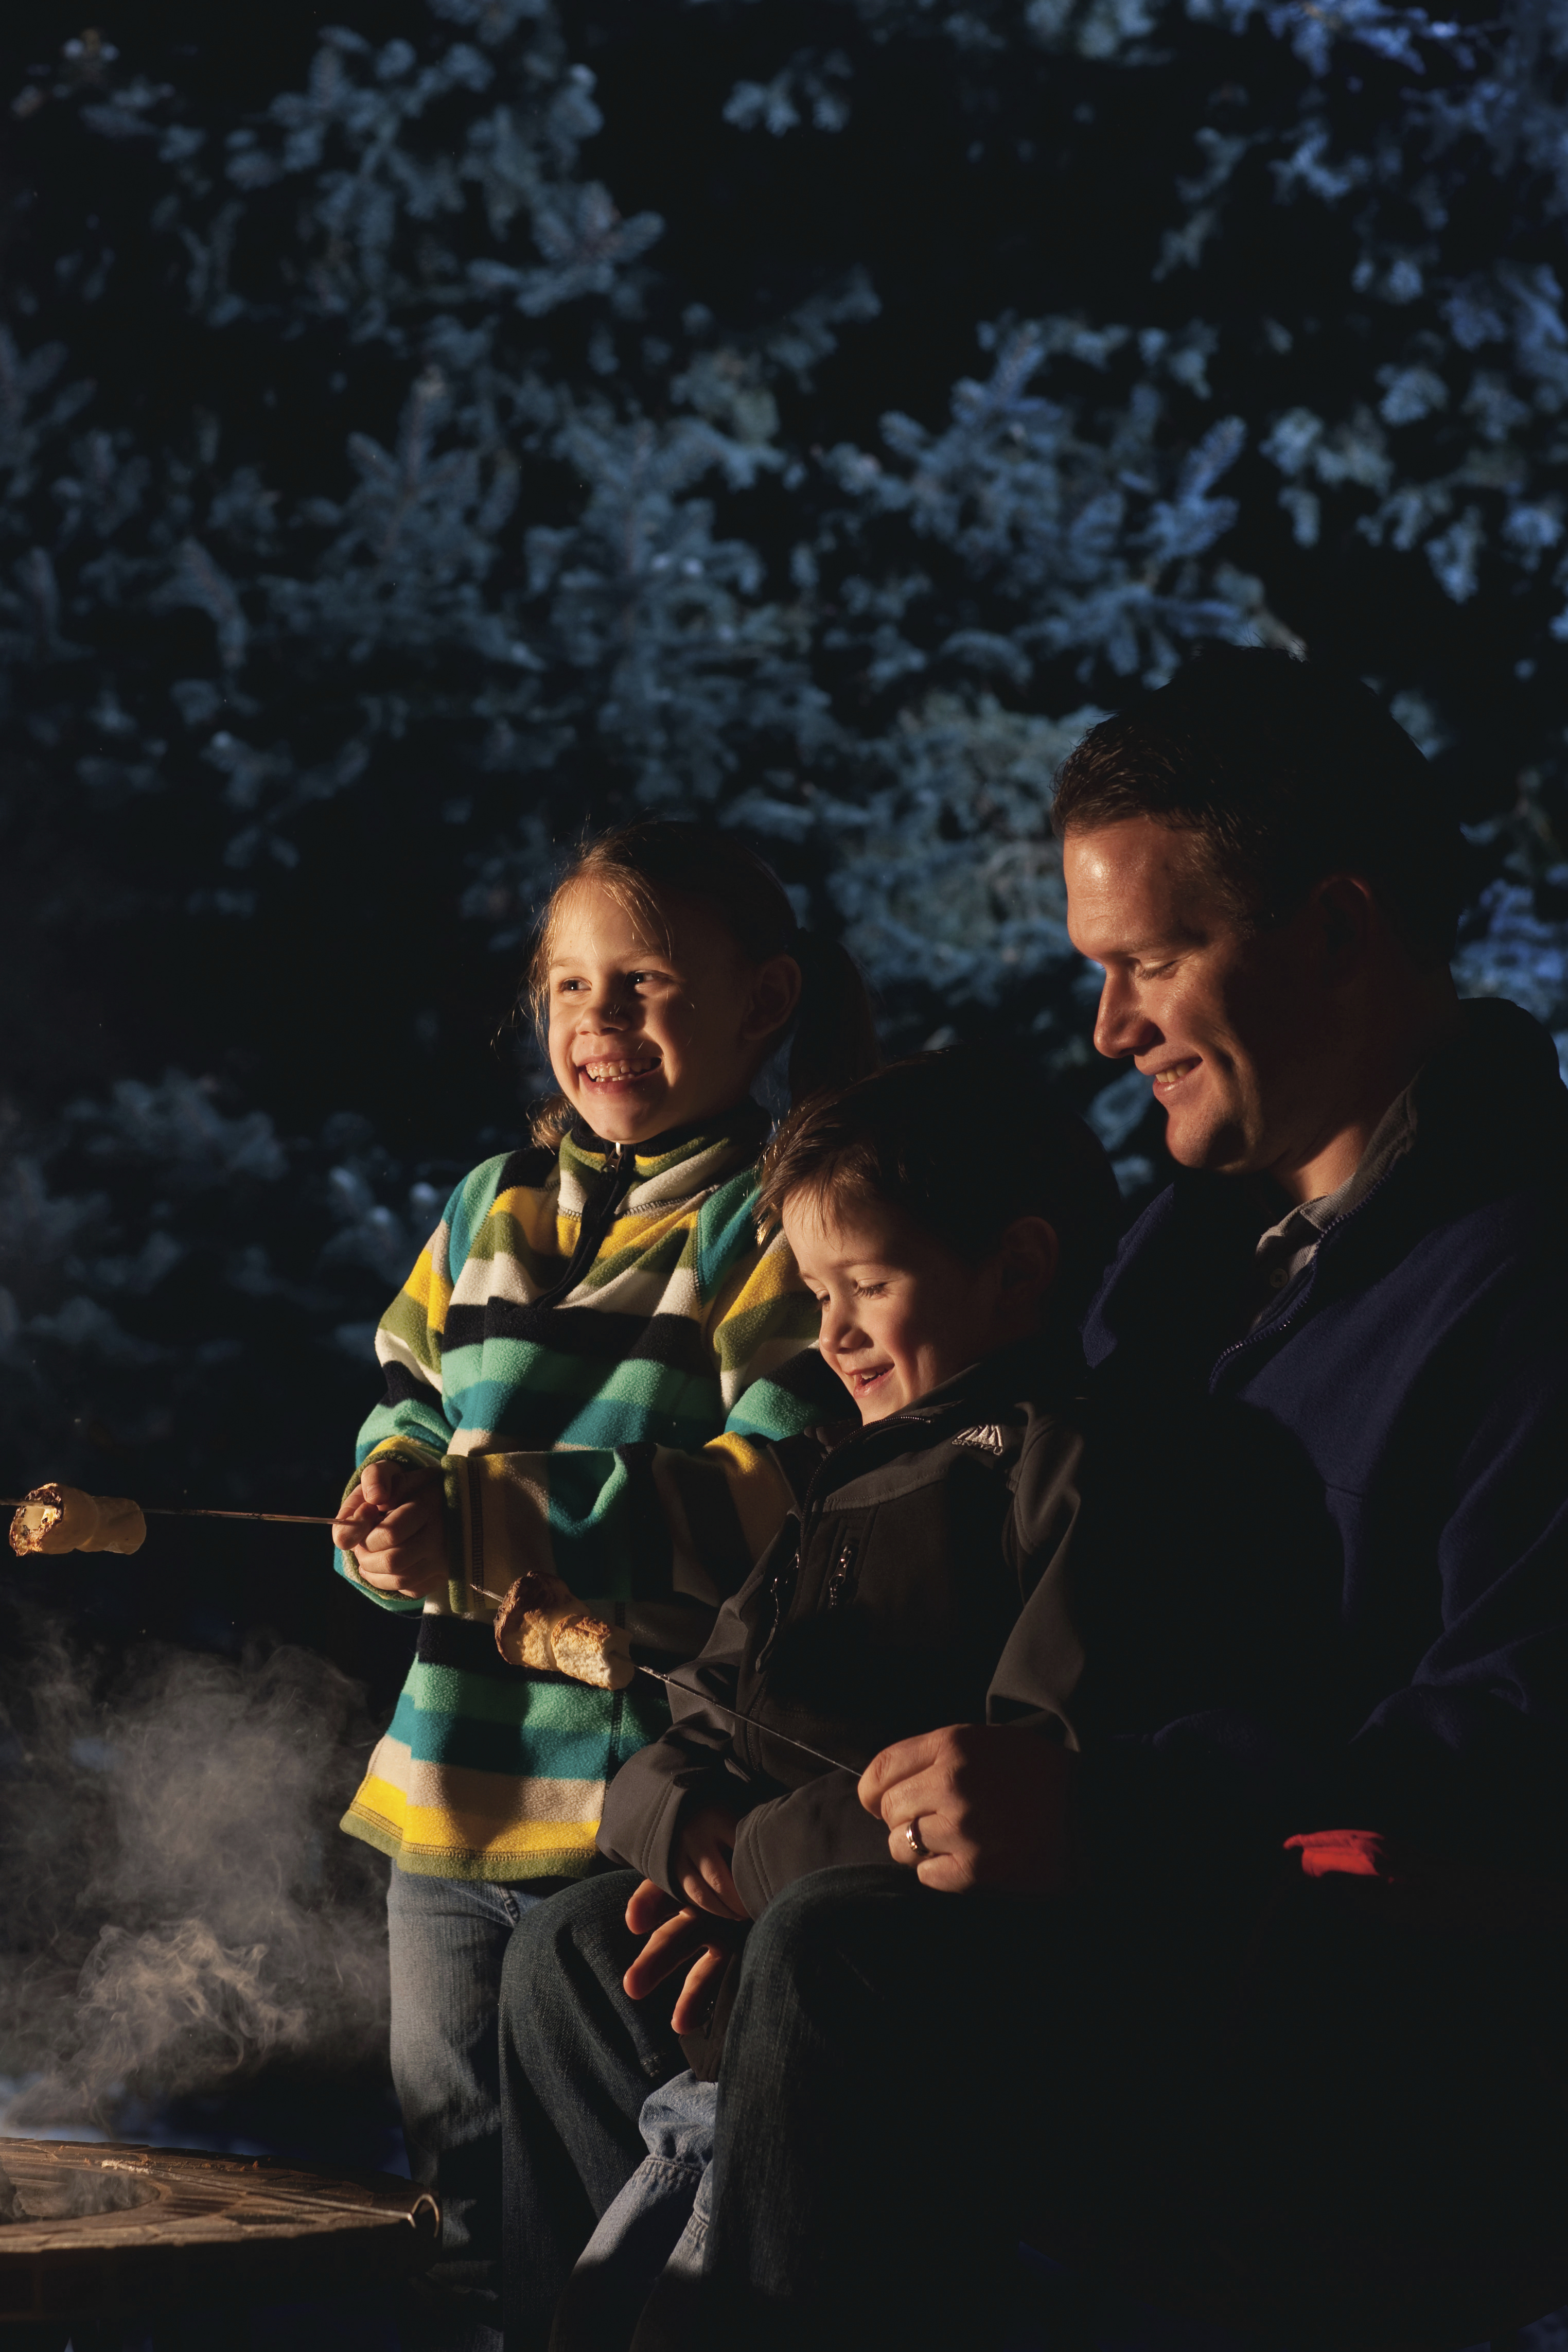 A father roasting marshmallows with his two young children.